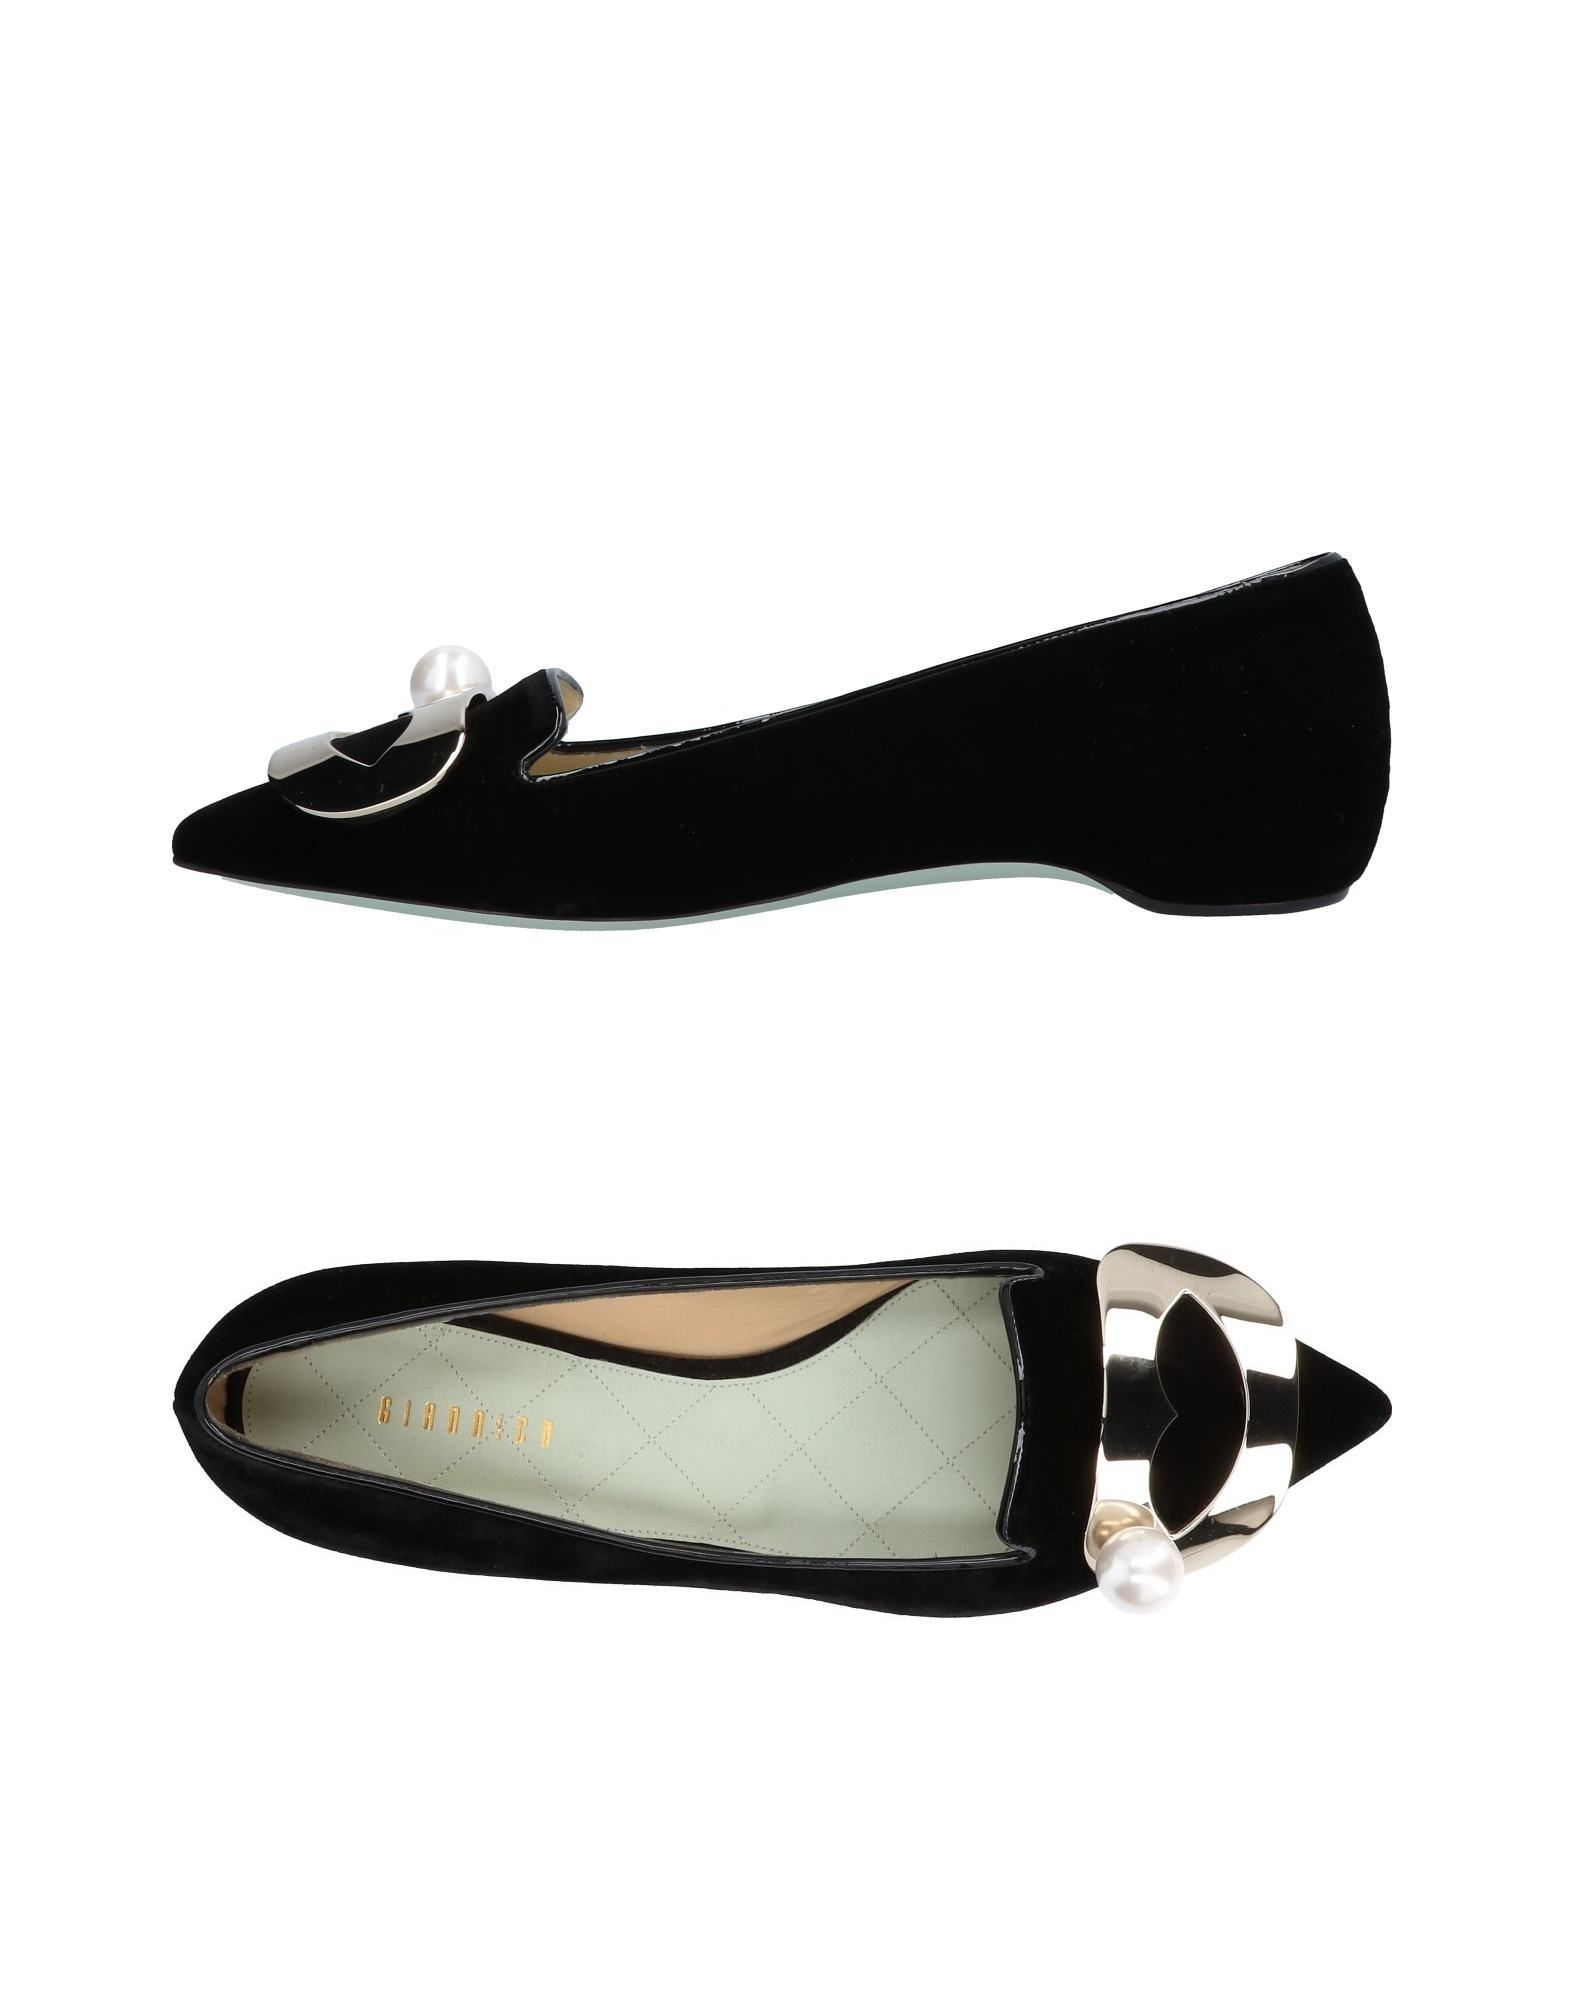 GIANNICO Loafers in Black